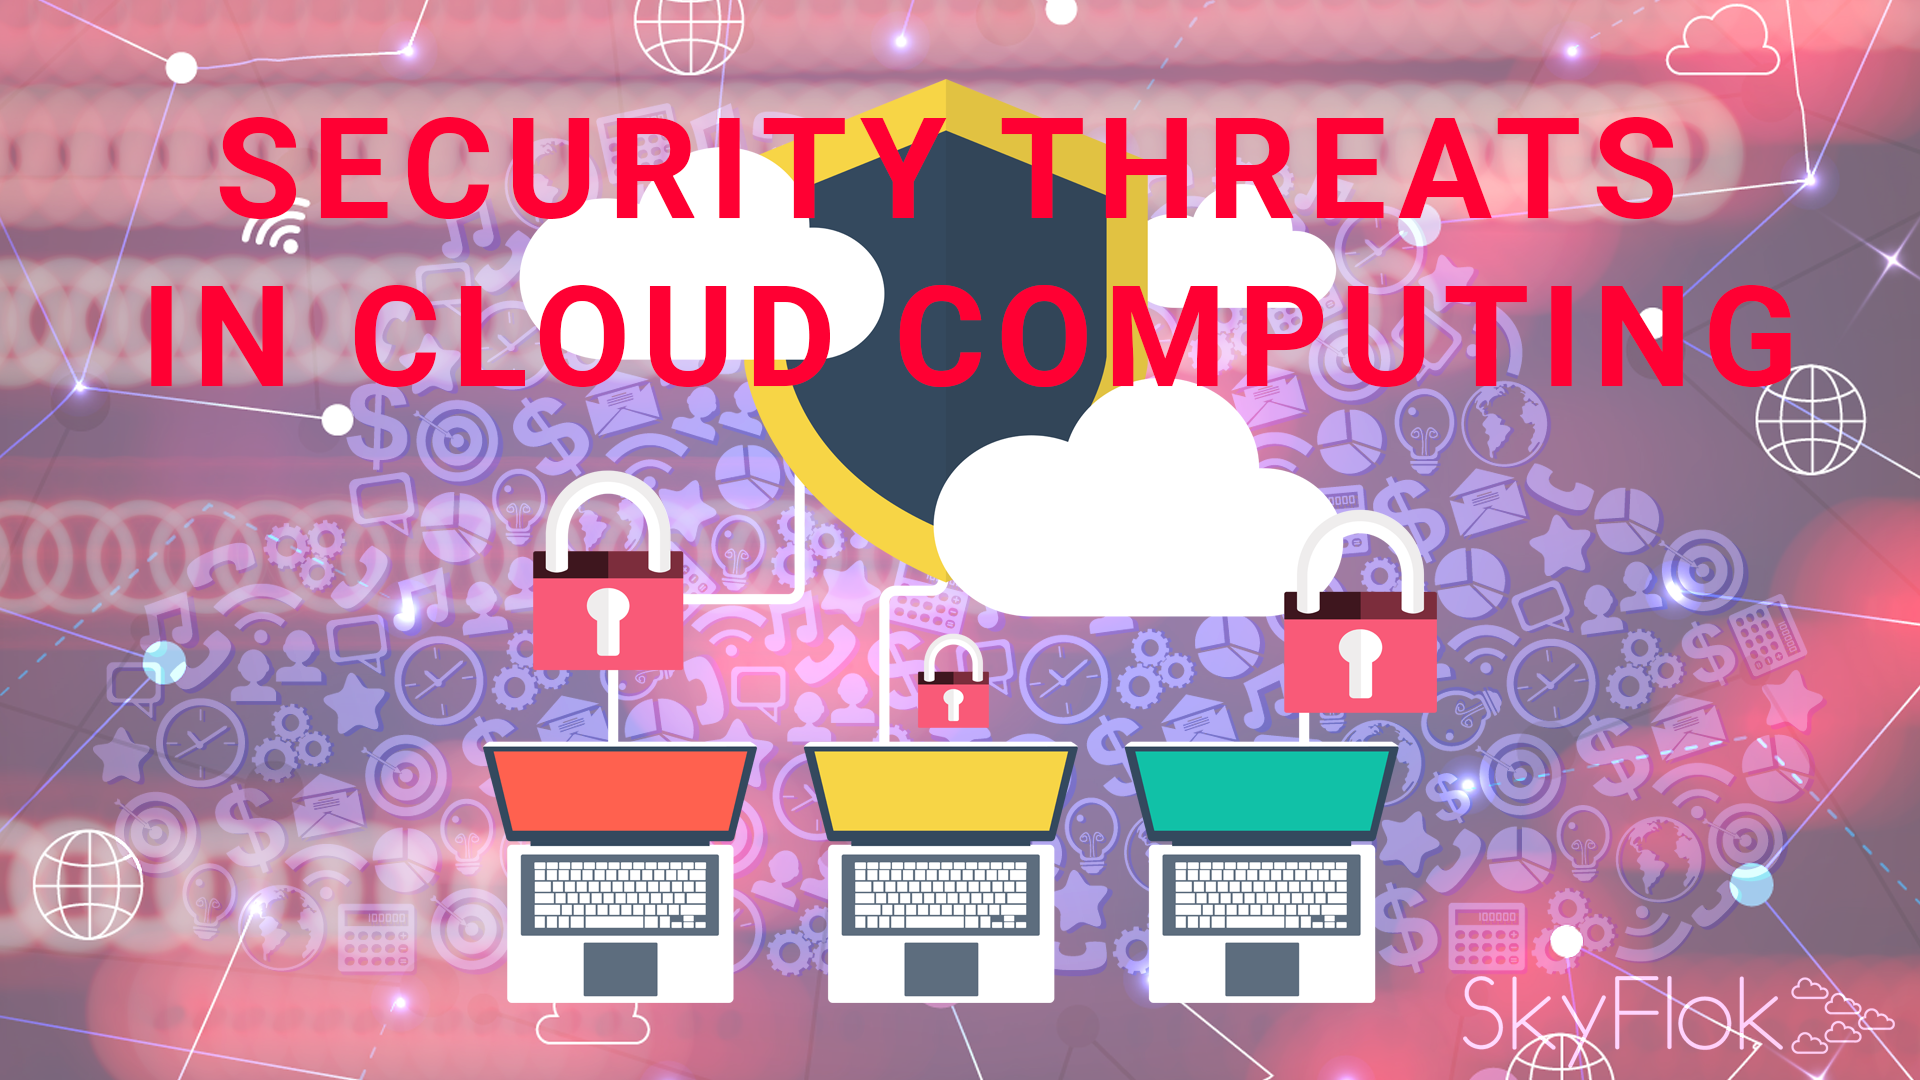 Security threats in Cloud Computing